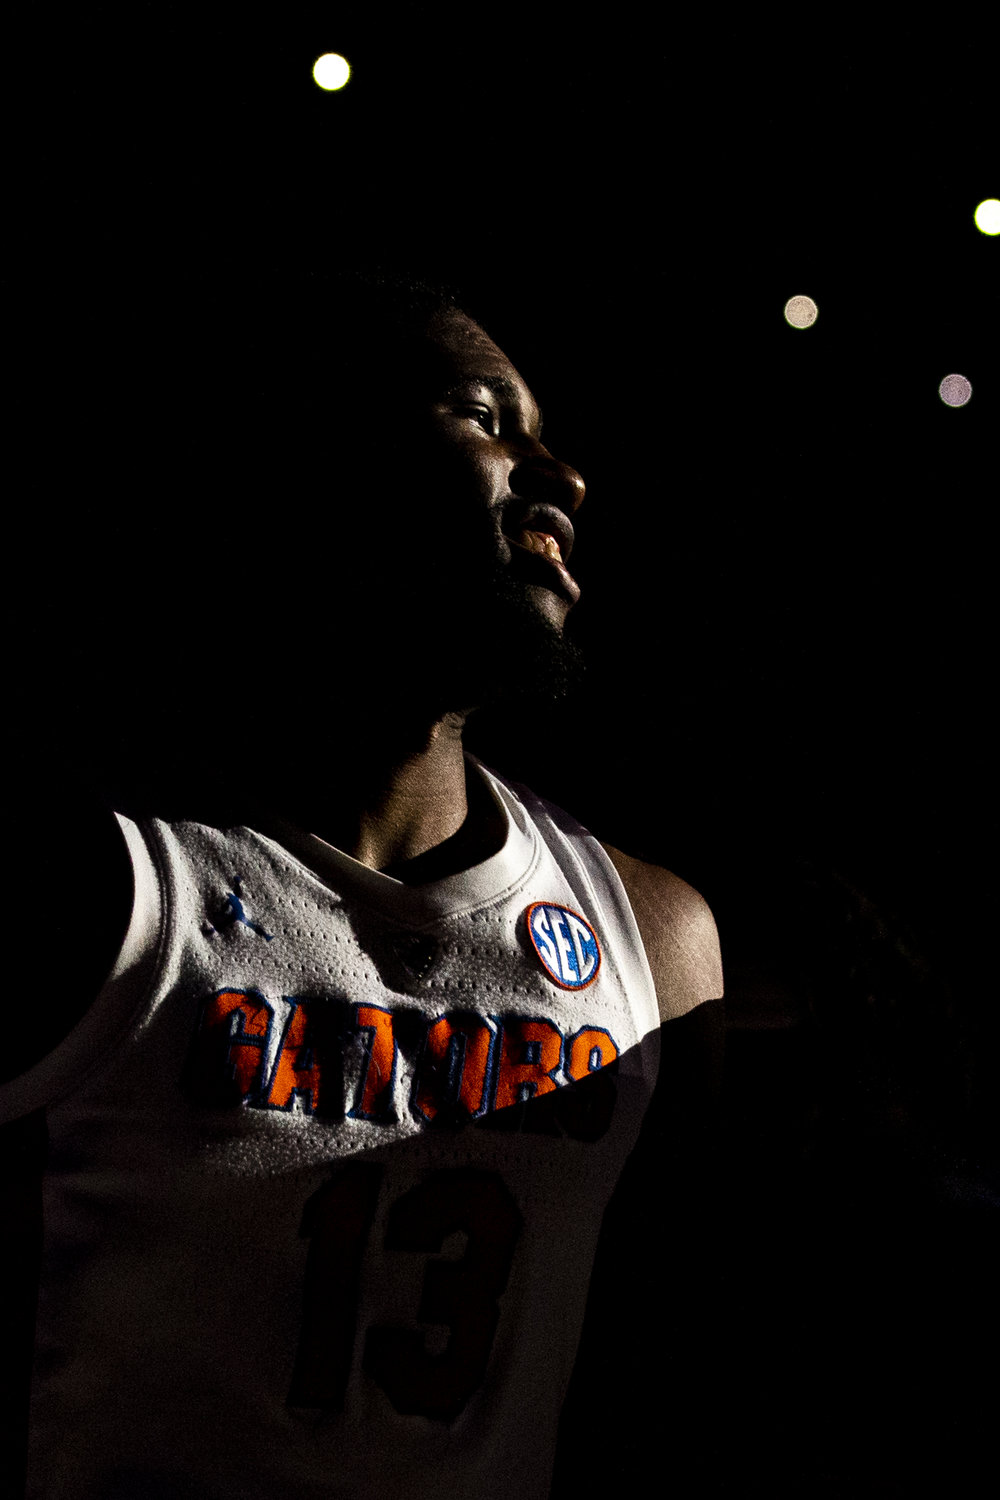 Florida Gators center Kevarrius Hayes (13) walks onto the court as the starting lineup is announced during the Florida Gators home game against the South Carolina Gamecocks on January 5, 2019.